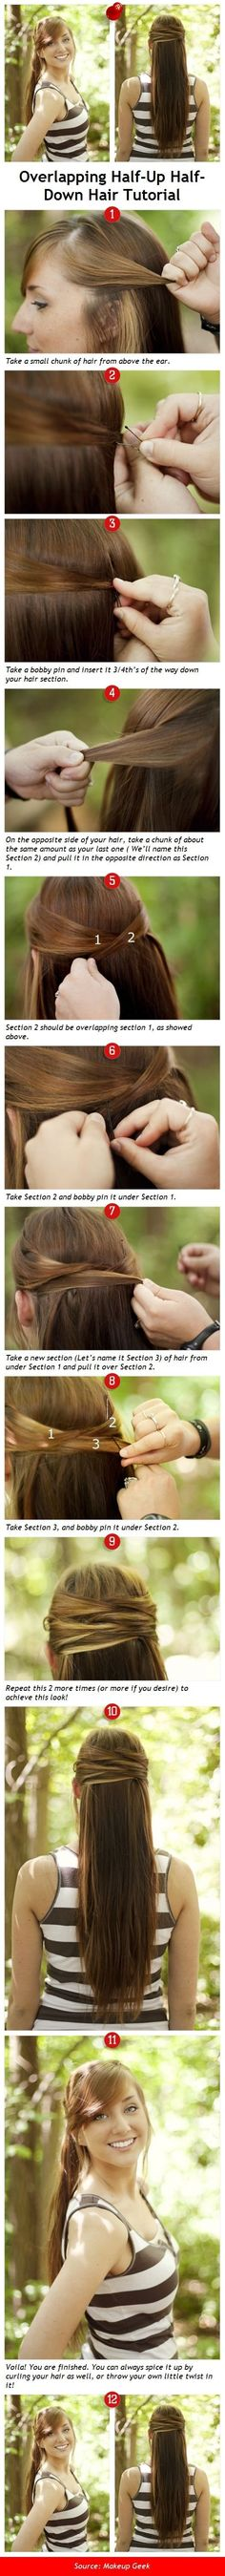 Half-up Half-down Hairstyles & Hair Tutorials for Women overlapping half-up half-down hair tutorial .overlapping half-up half-down hair tutorial . Diy Hairstyles, Pretty Hairstyles, Hairstyle Tutorials, Wedding Hairstyles, Makeup Tutorials, Perfect Hairstyle, Simple Hairstyles, Everyday Hairstyles, Half Up Half Down Hair Tutorial